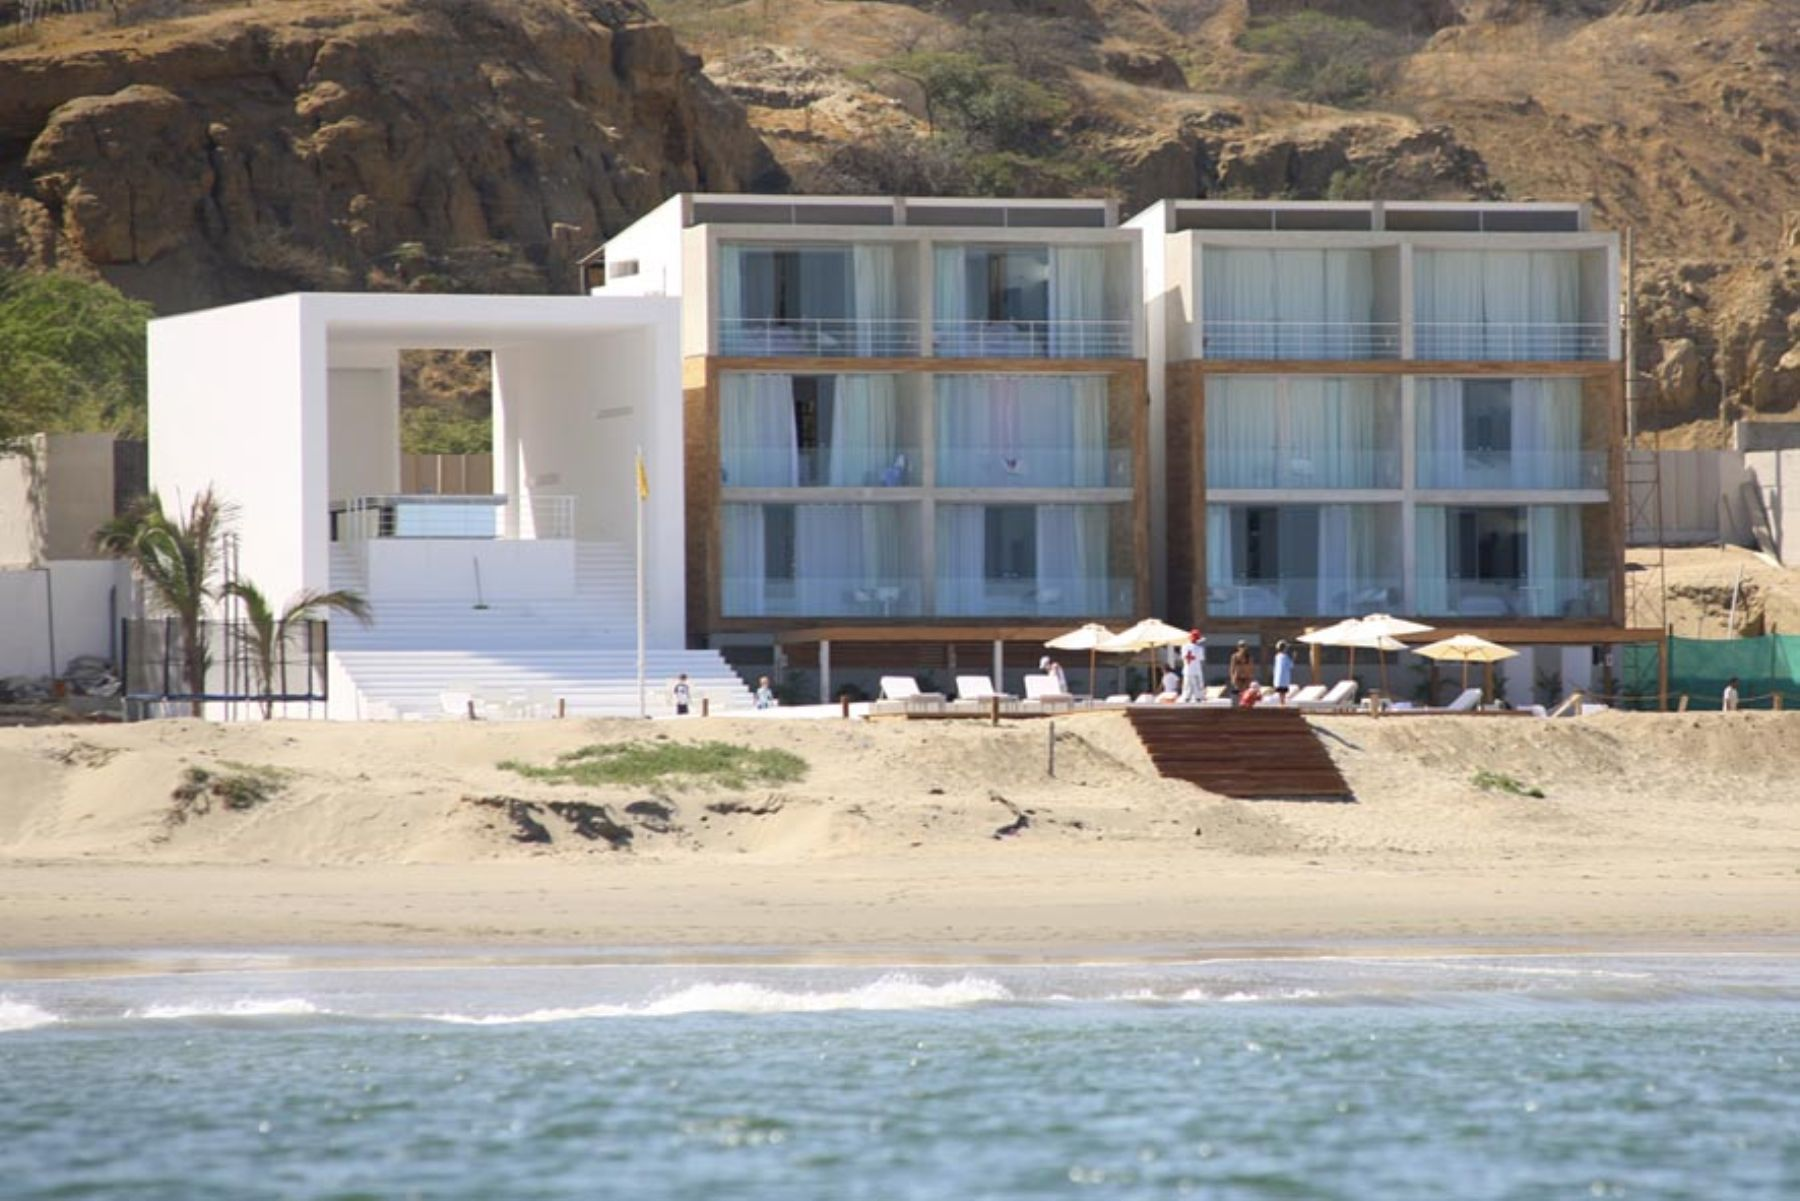 Luxury hotel in Mancora. Photo: ANDINA.